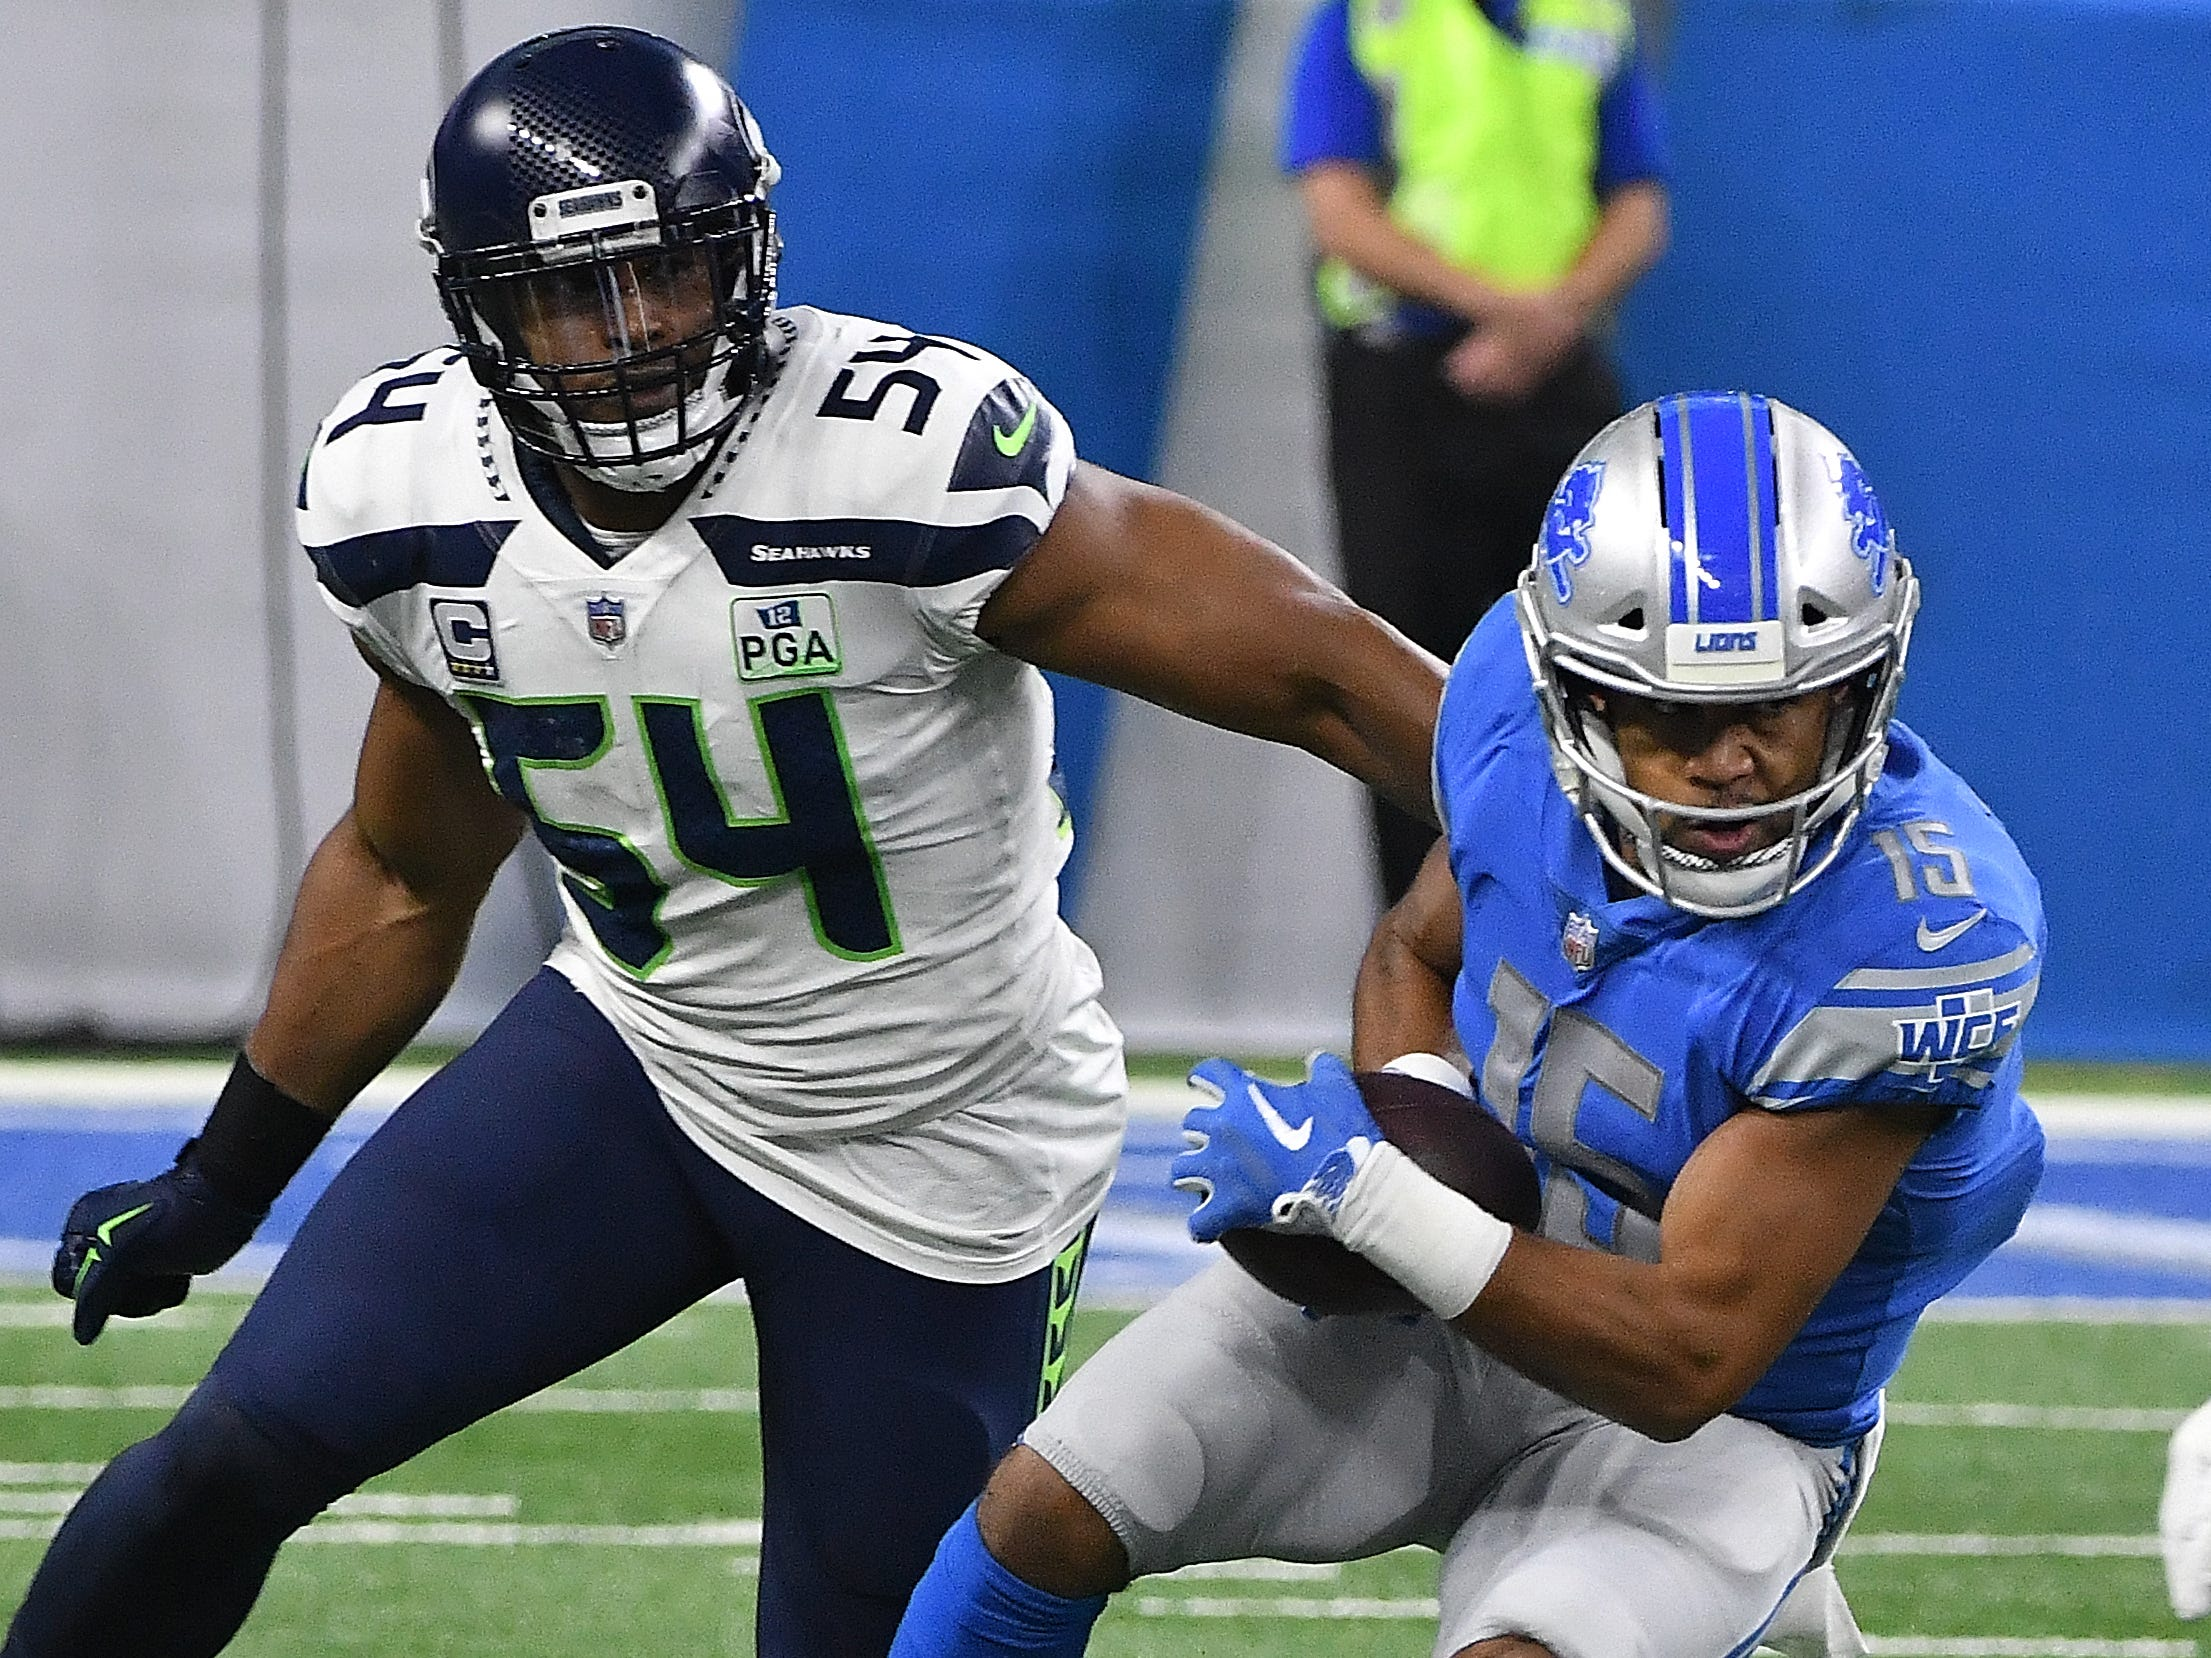 Lions' Golden Tate scrambles after a reception for extra yardage with Seahawks' Bobby Wagner defending in the first quarter.